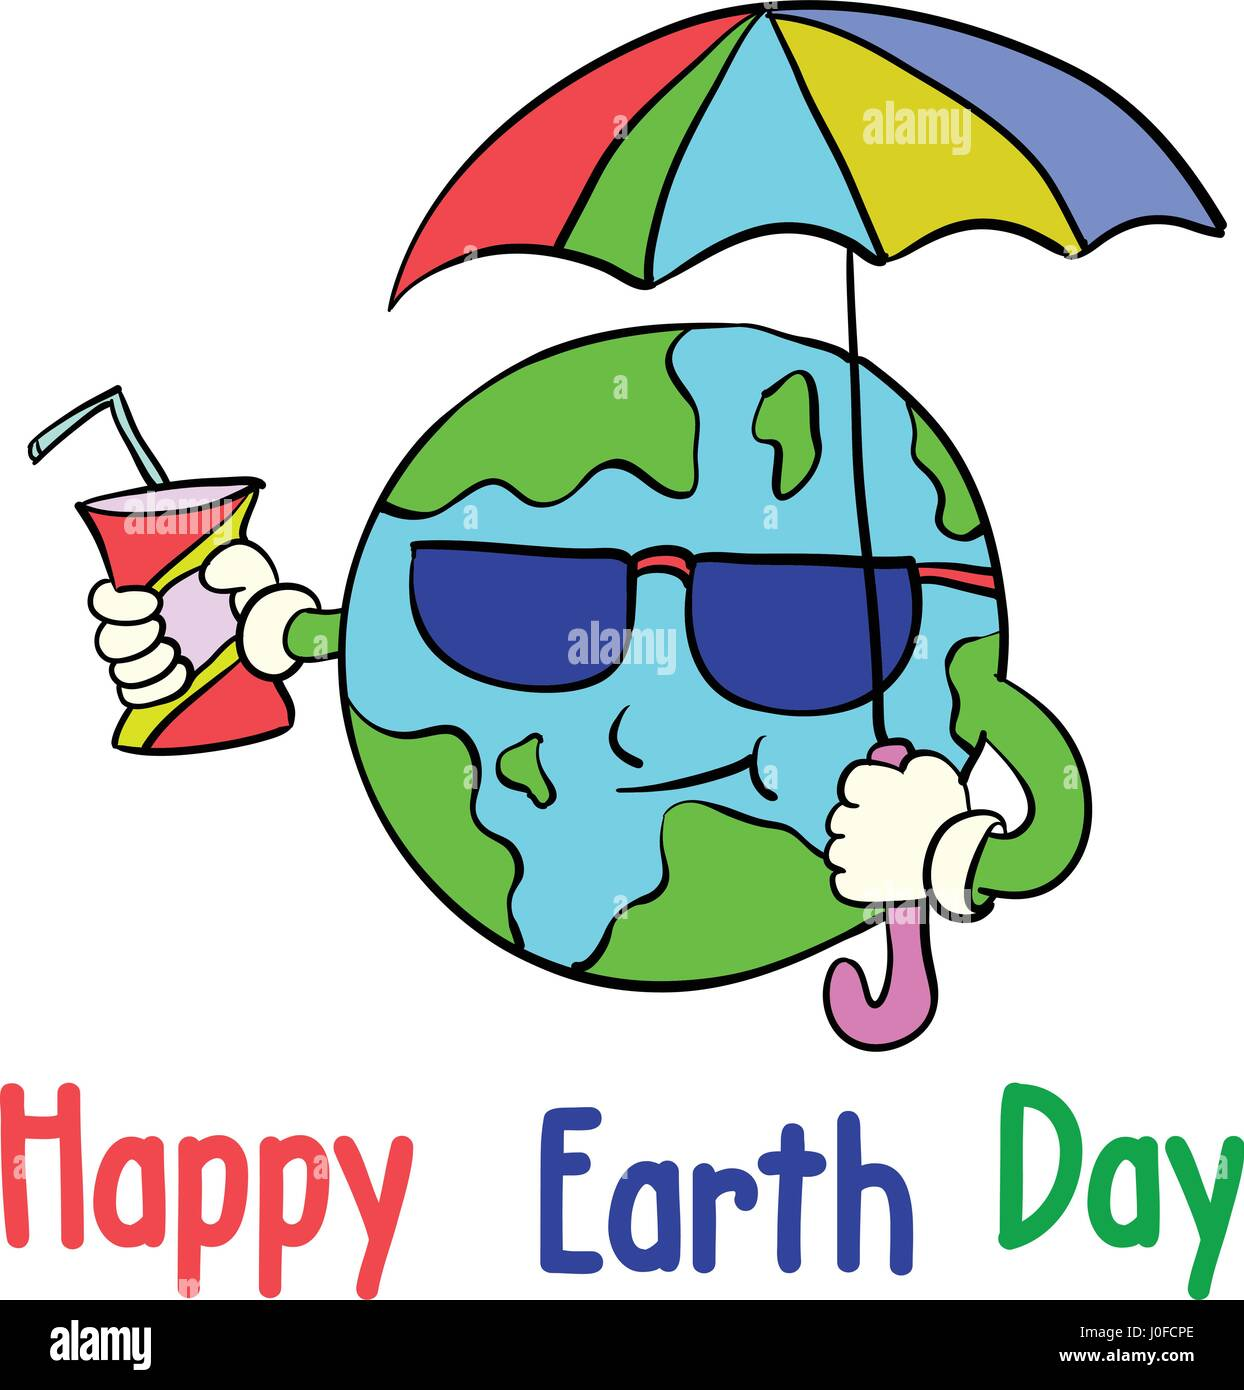 Cartoon Earth Day Style Collection Stock Vector Art Amp Illustration Vector Image